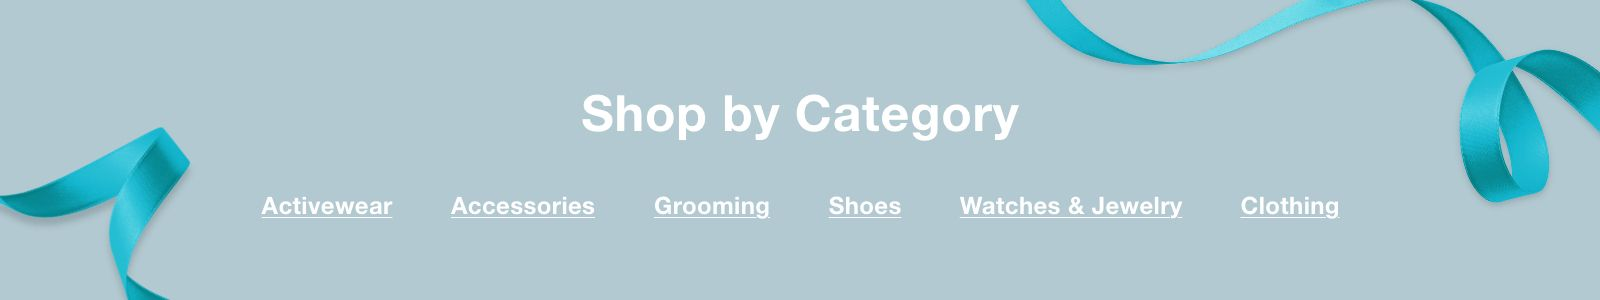 Shop by Category, Activewear, Accessories, Grooming, Shoes, Watch and Jewelry, Clothing